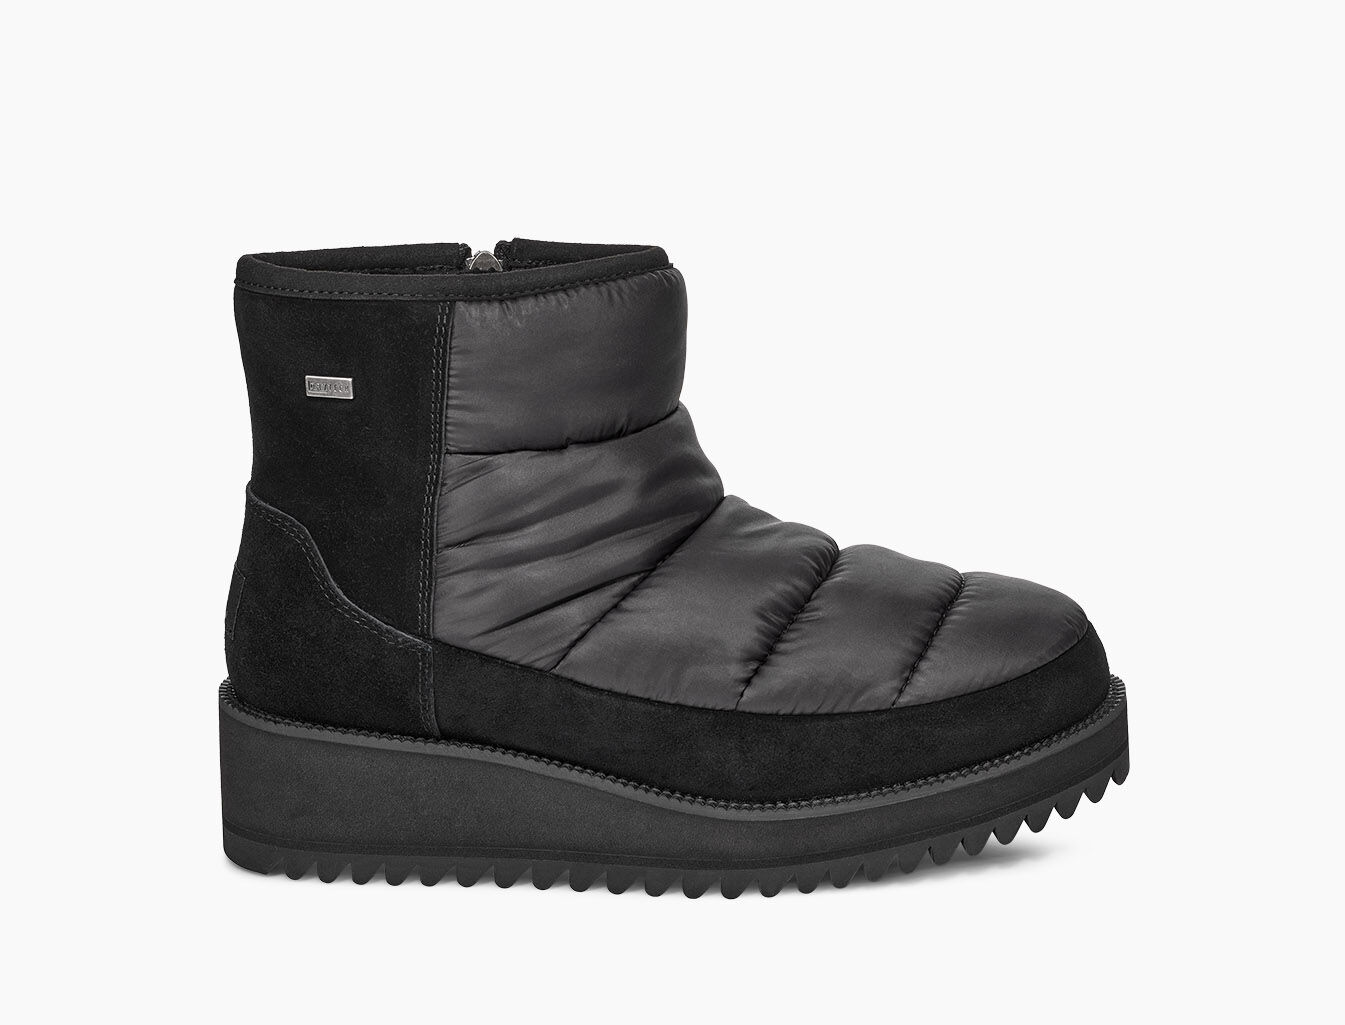 28 Best Comfortable Boots For Women images in 2020